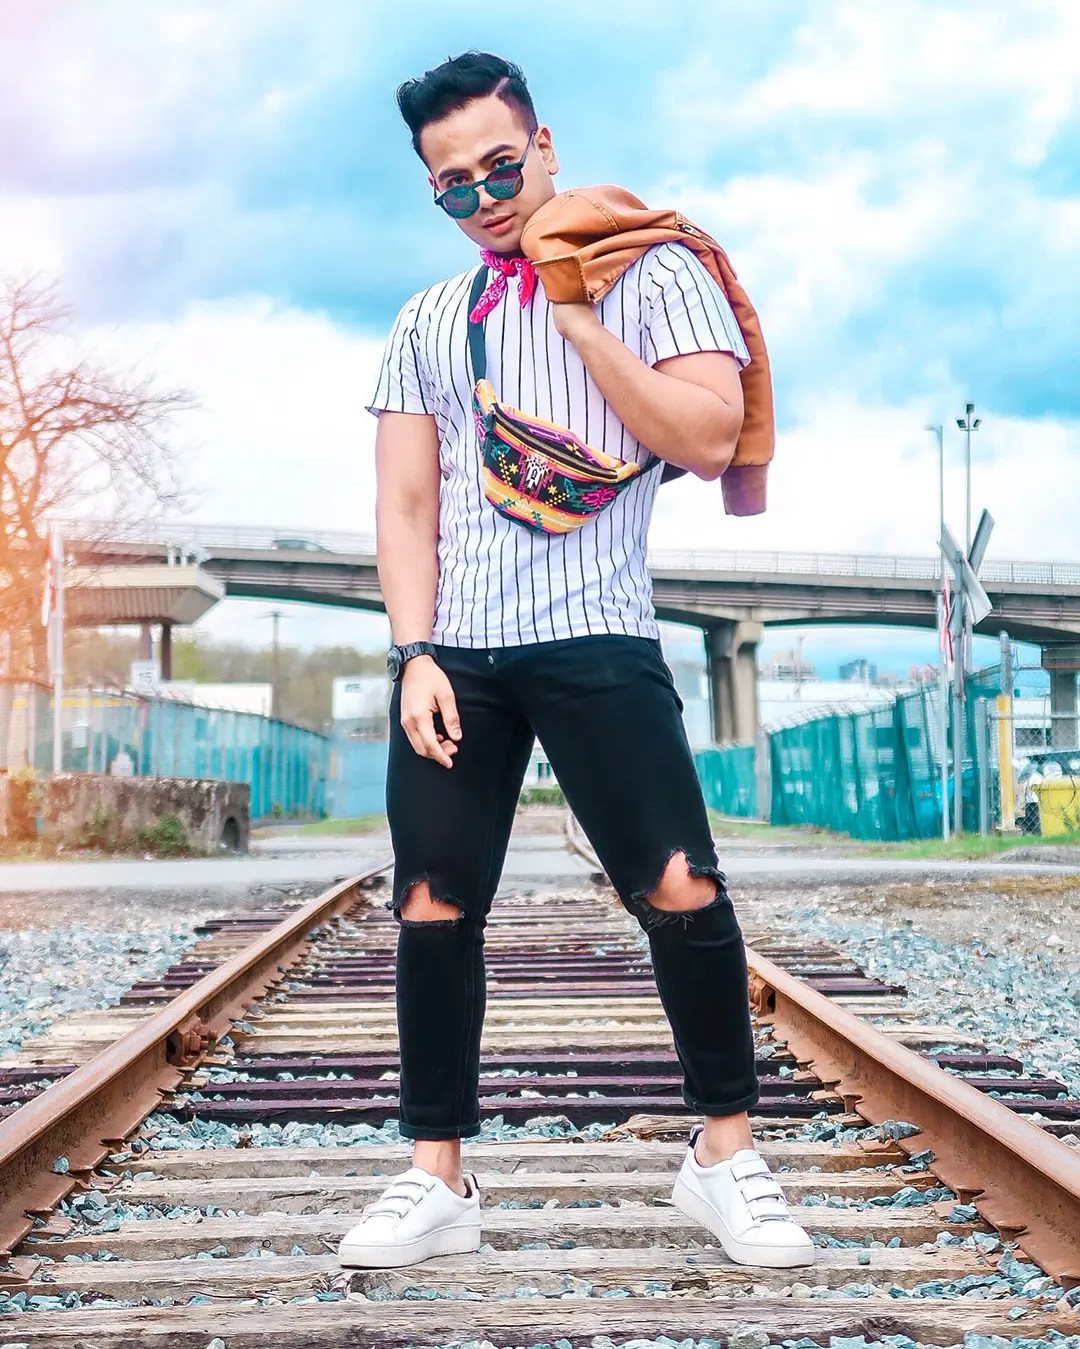 Jonathan Waiching Ho Travel Blogger Influencer Summer fashion men Canada Social Media Influencer Biker jacket denims Toronto Influencer Fashion Canada Blogs